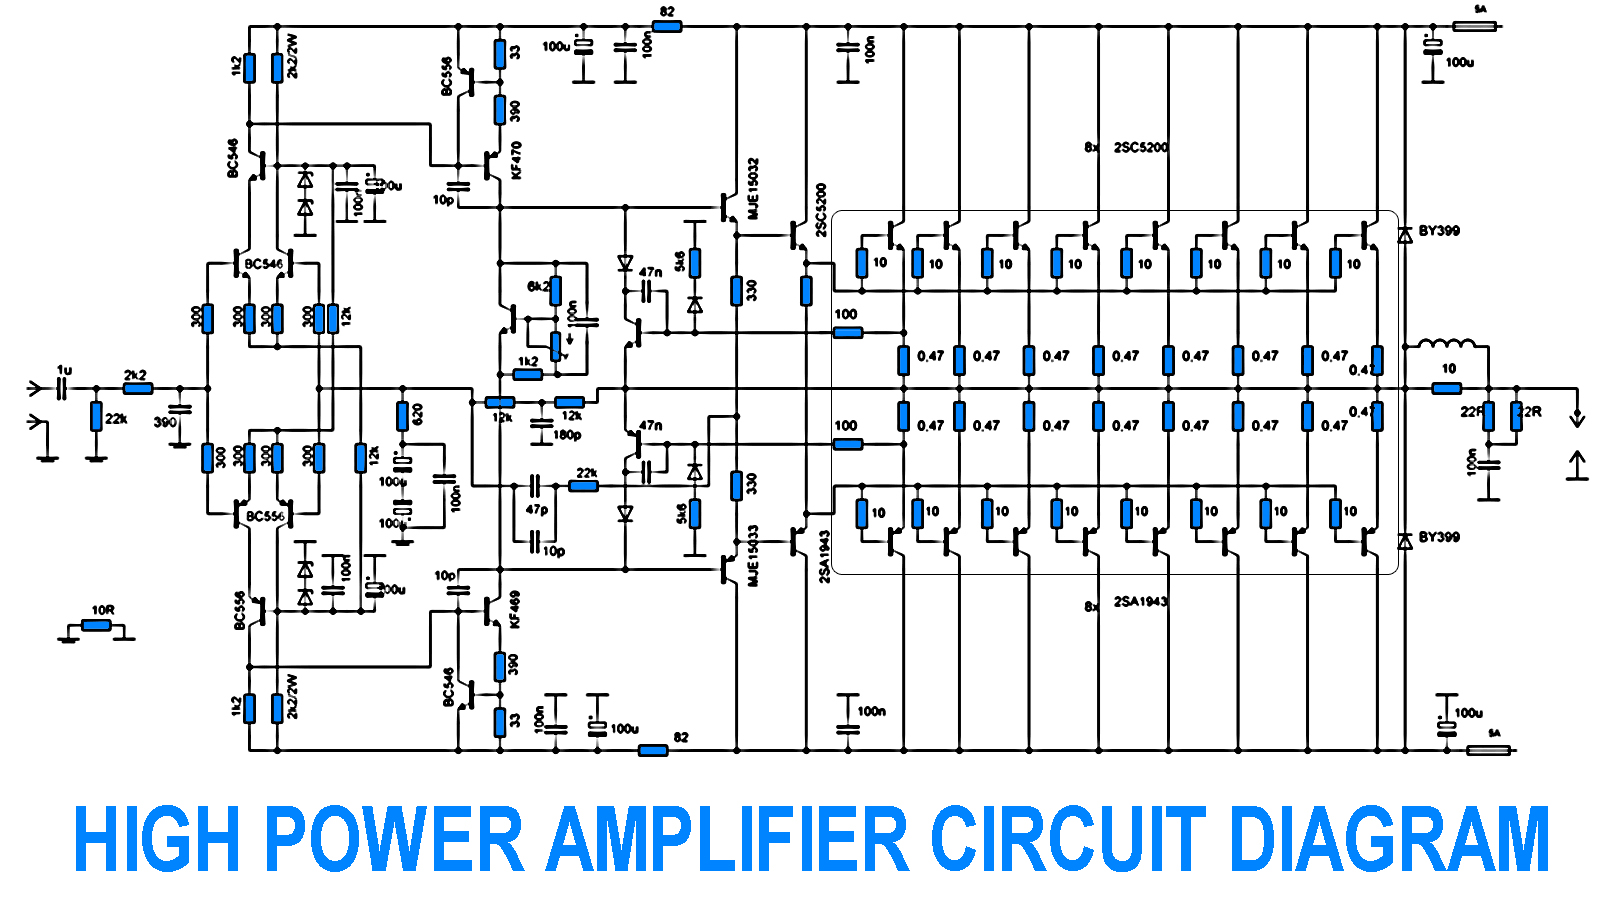 wiring schematic diagram: october 2014 amplifier circuit diagram